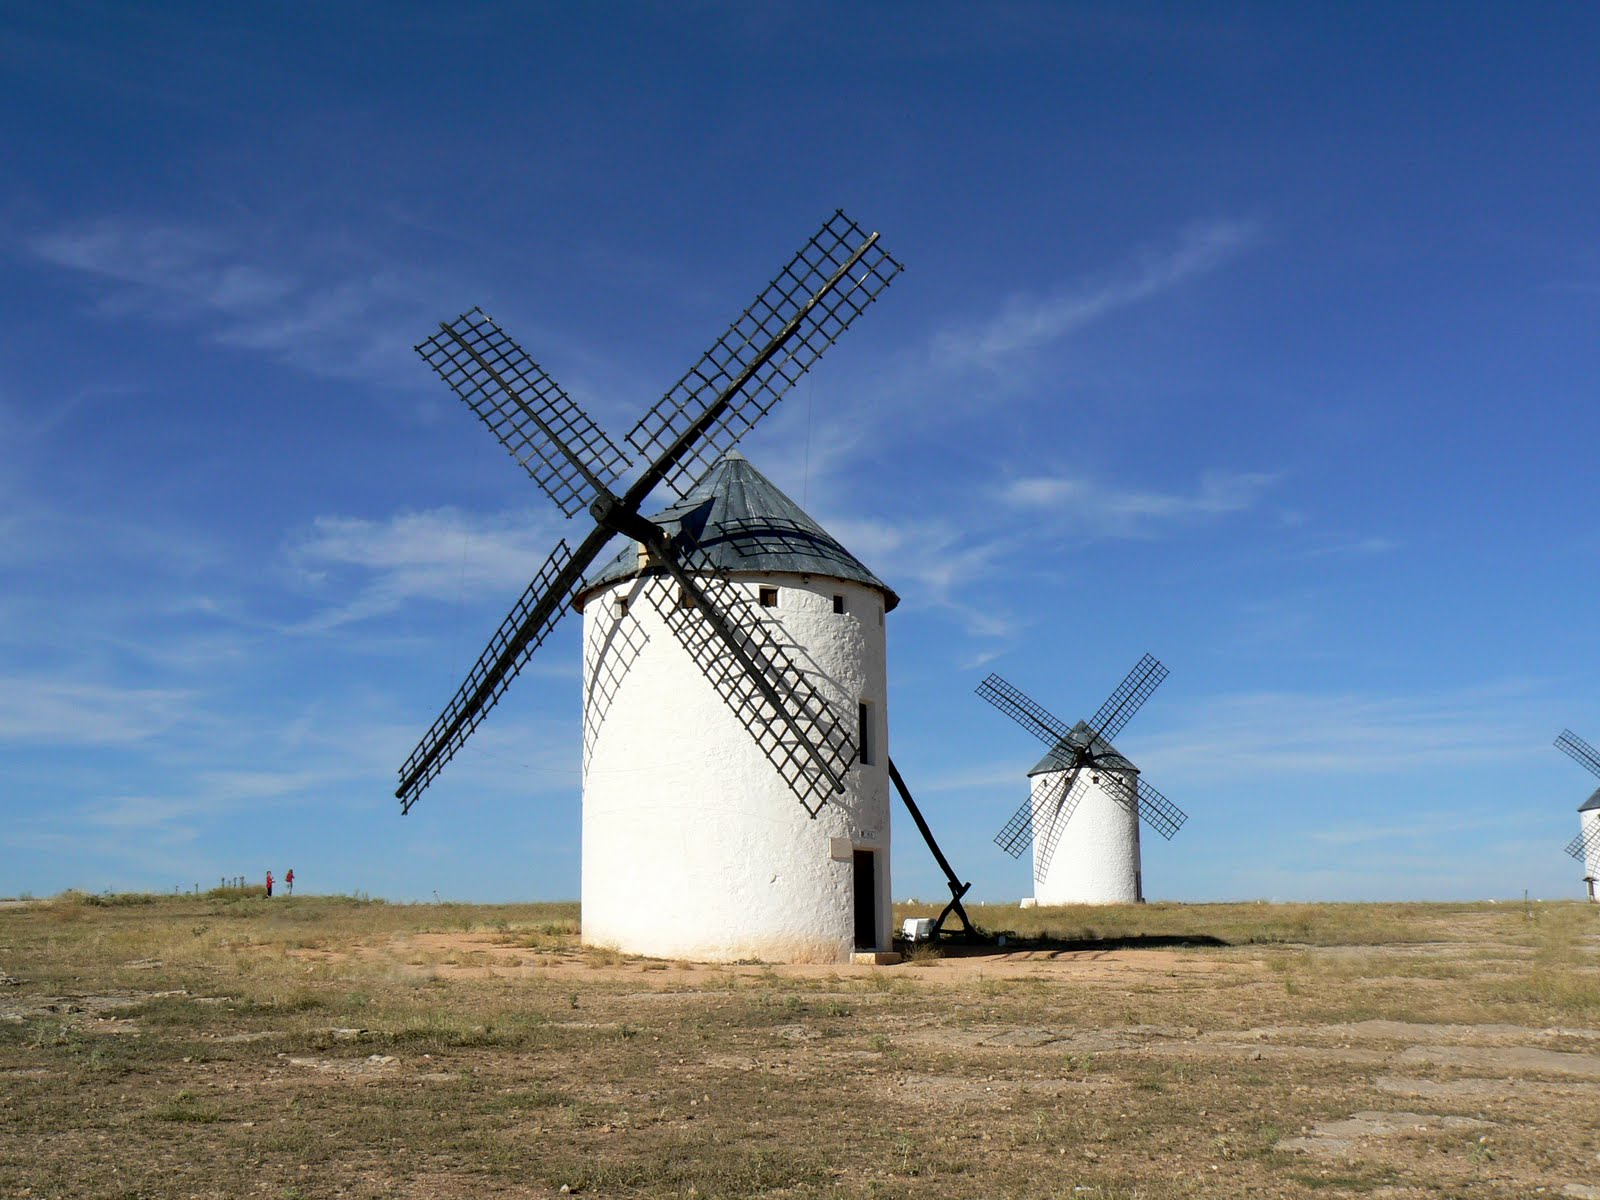 An Englishman Abroad: The Windmills of La Mancha